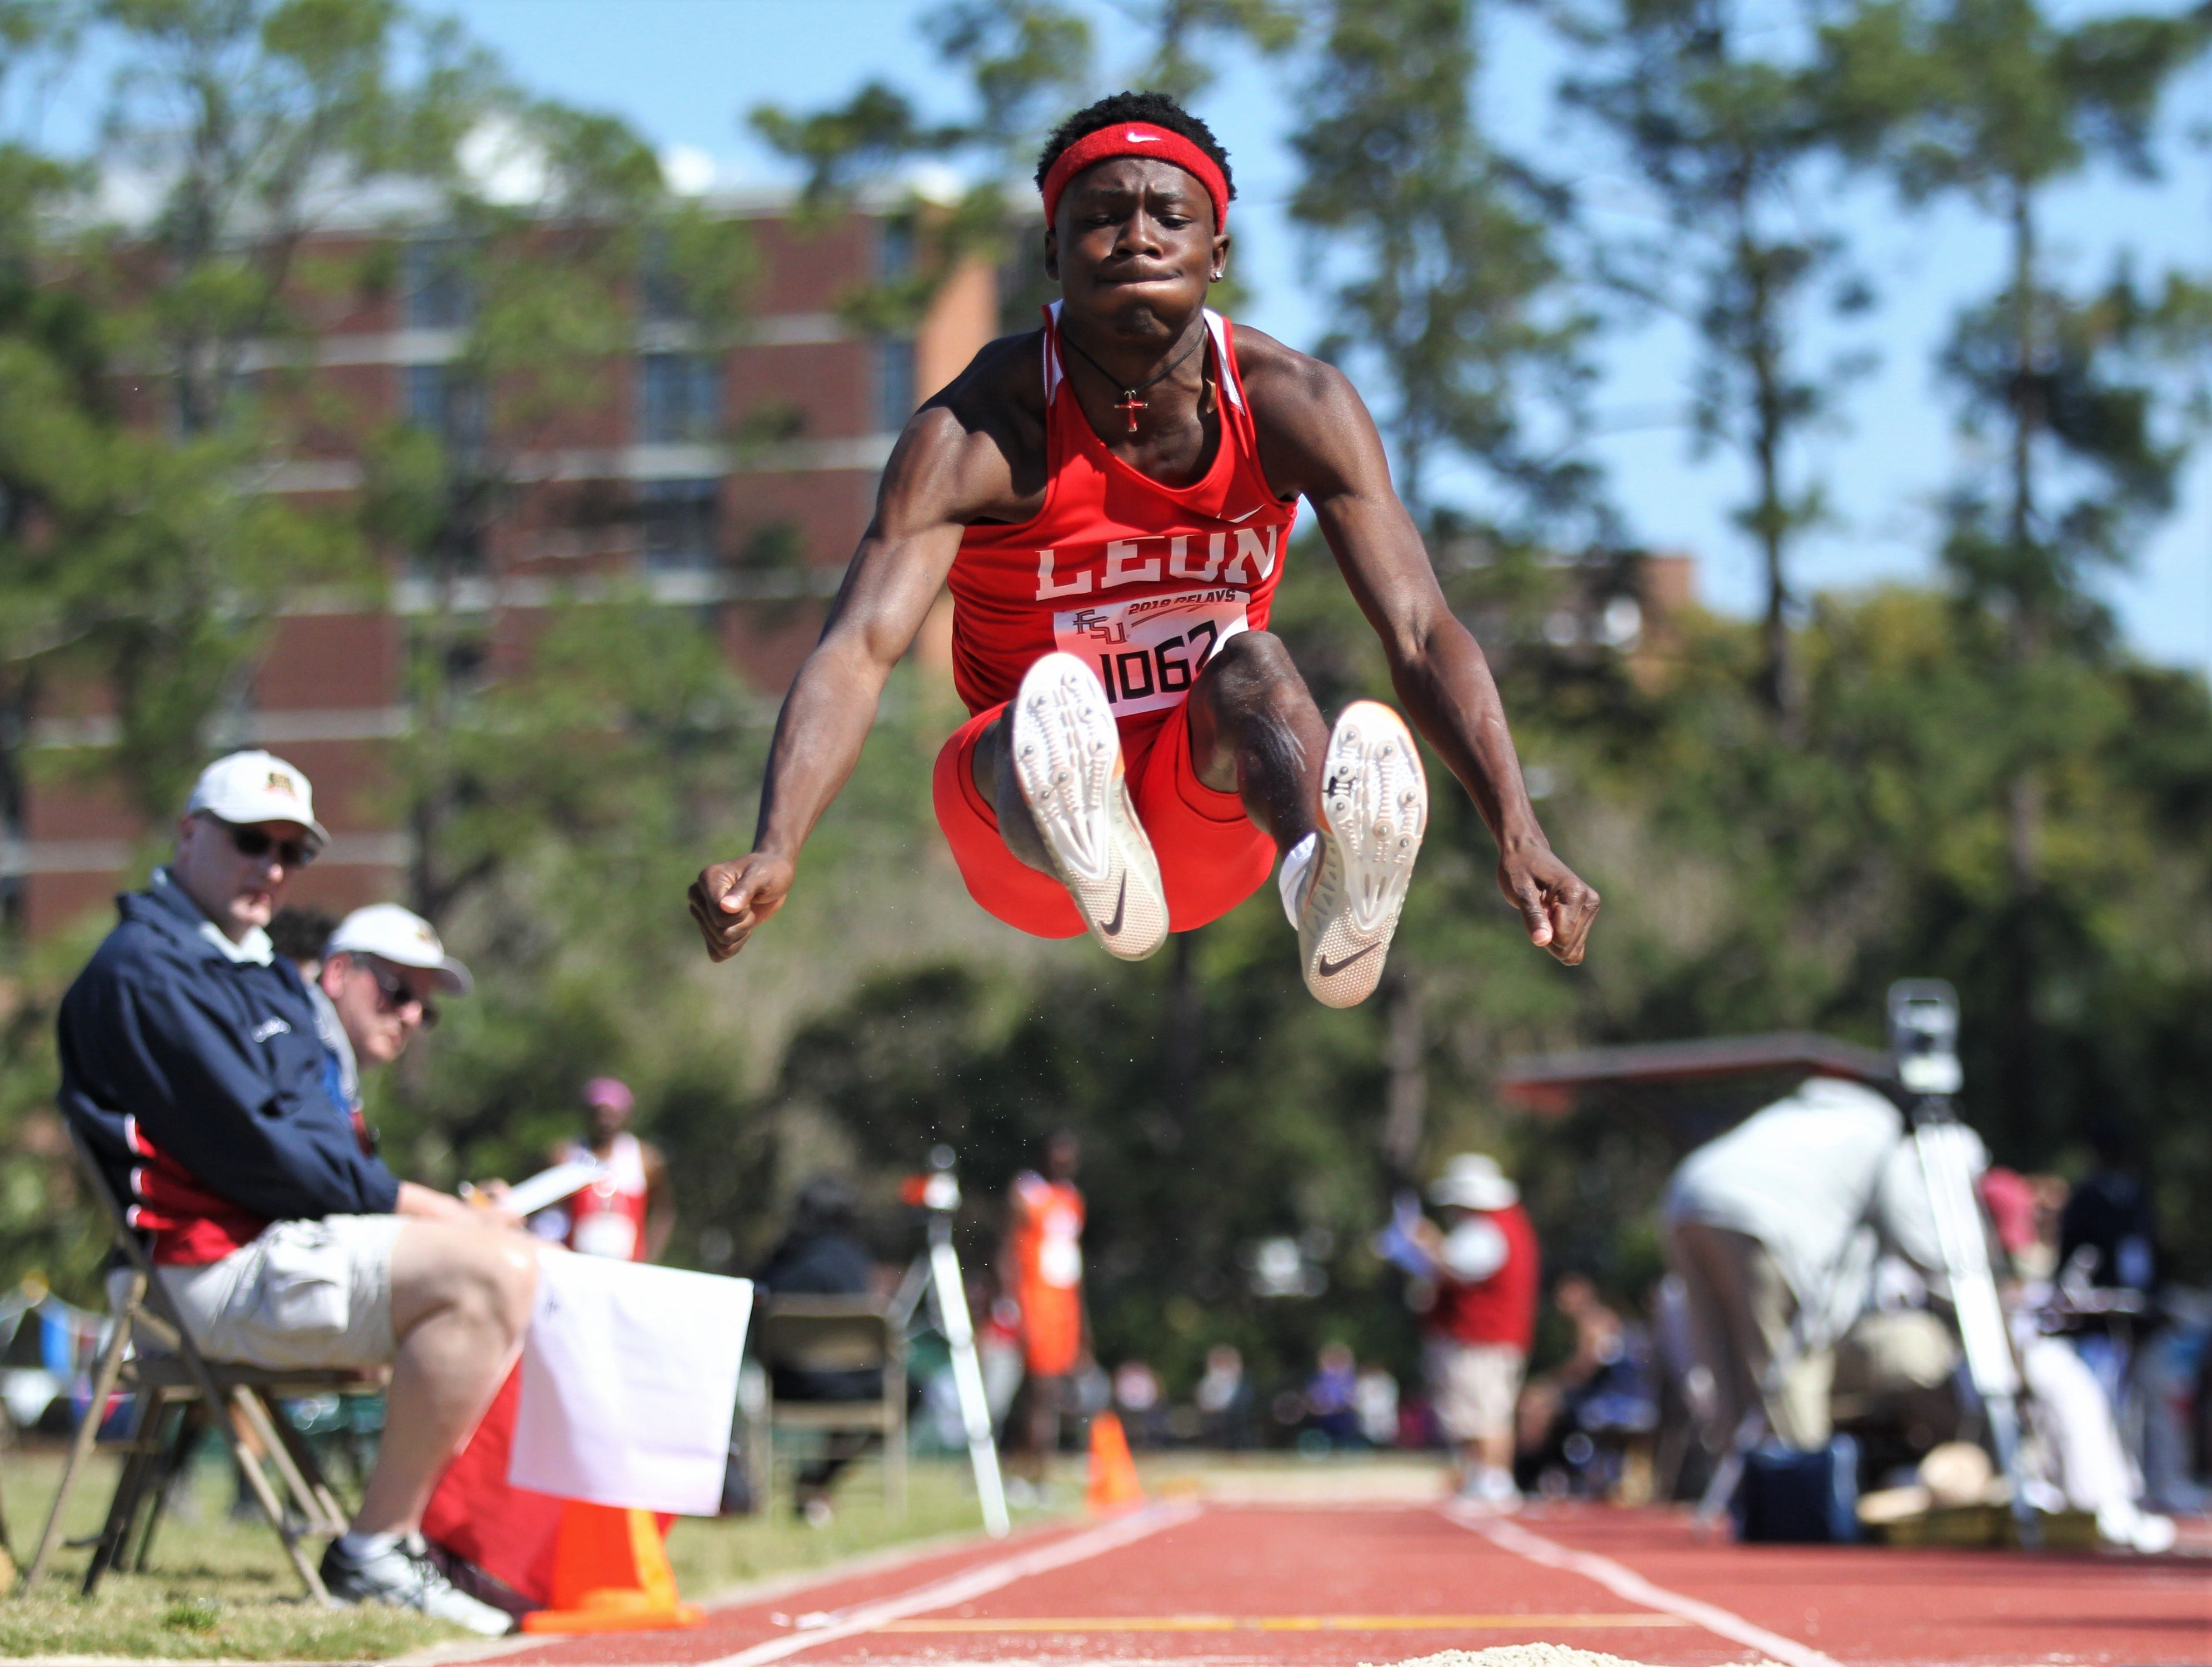 Leon sophomore Curtis Williams long jumps during the 40th annual FSU Relays at Mike Long Track on Saturday, March 23, 2019.